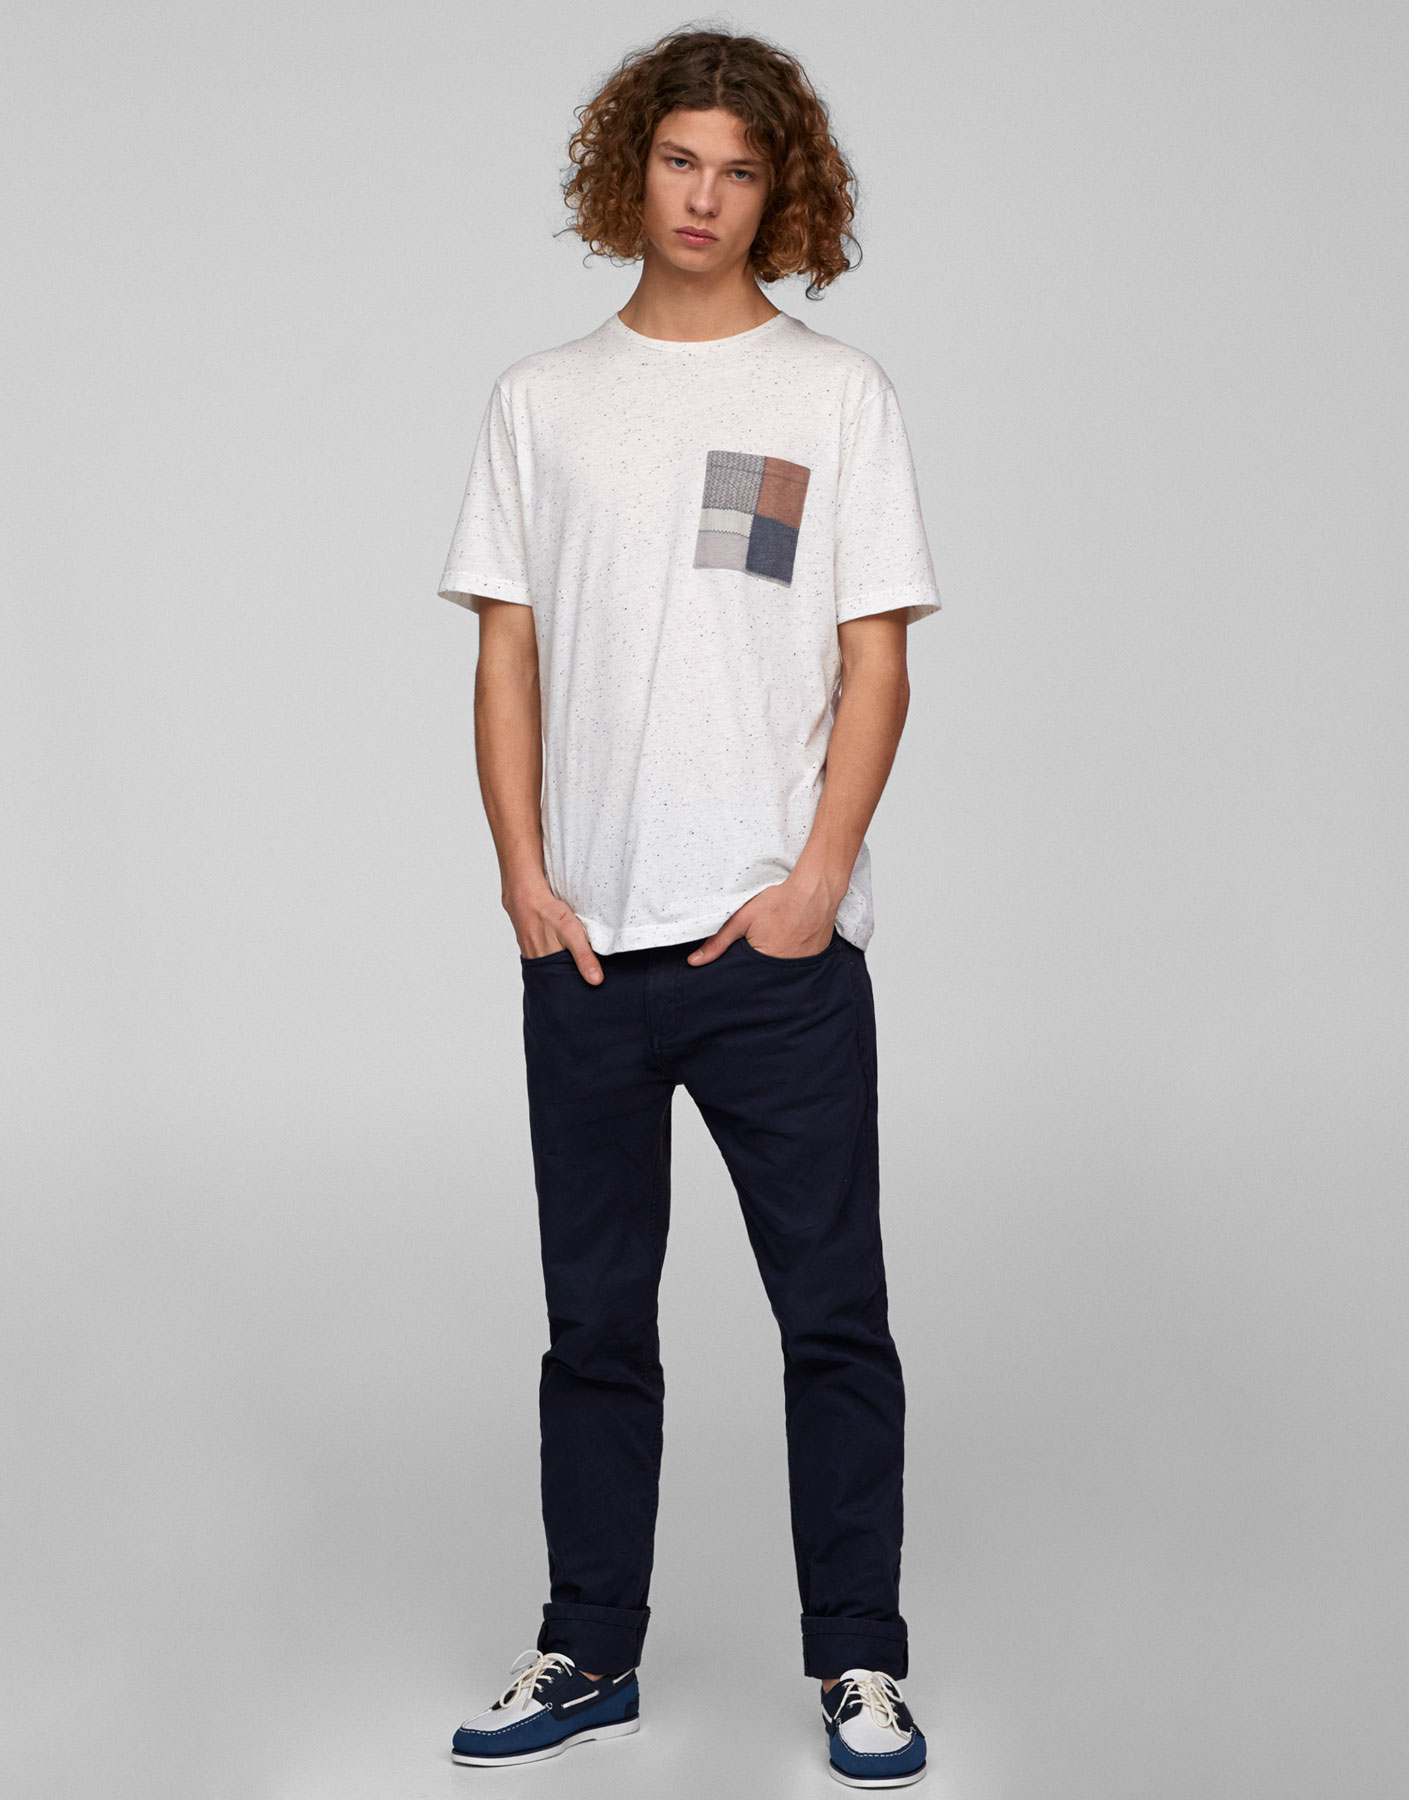 Short sleeve printed T-shirt with pocket